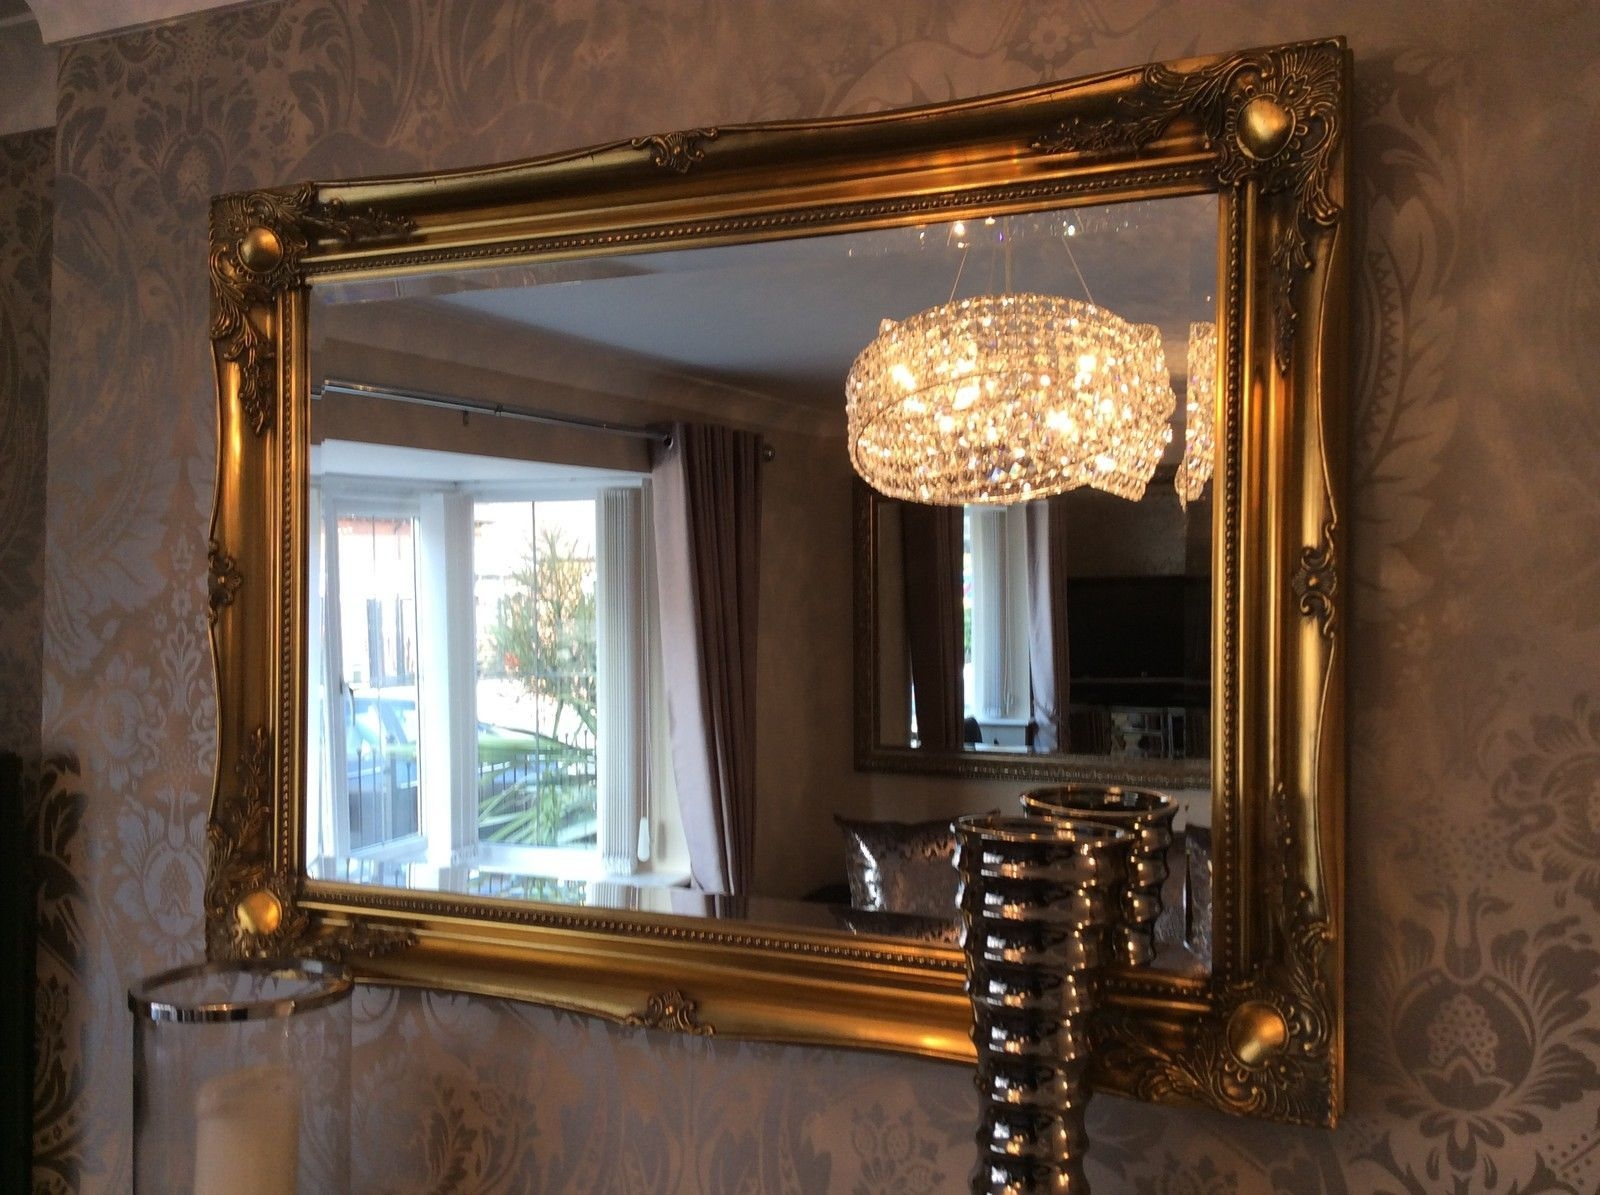 Big Wall Mirrors Uk Small Size Of Oversized Wall Mirrors Huge Within Large Ornate Mirrors For Wall (Image 2 of 15)